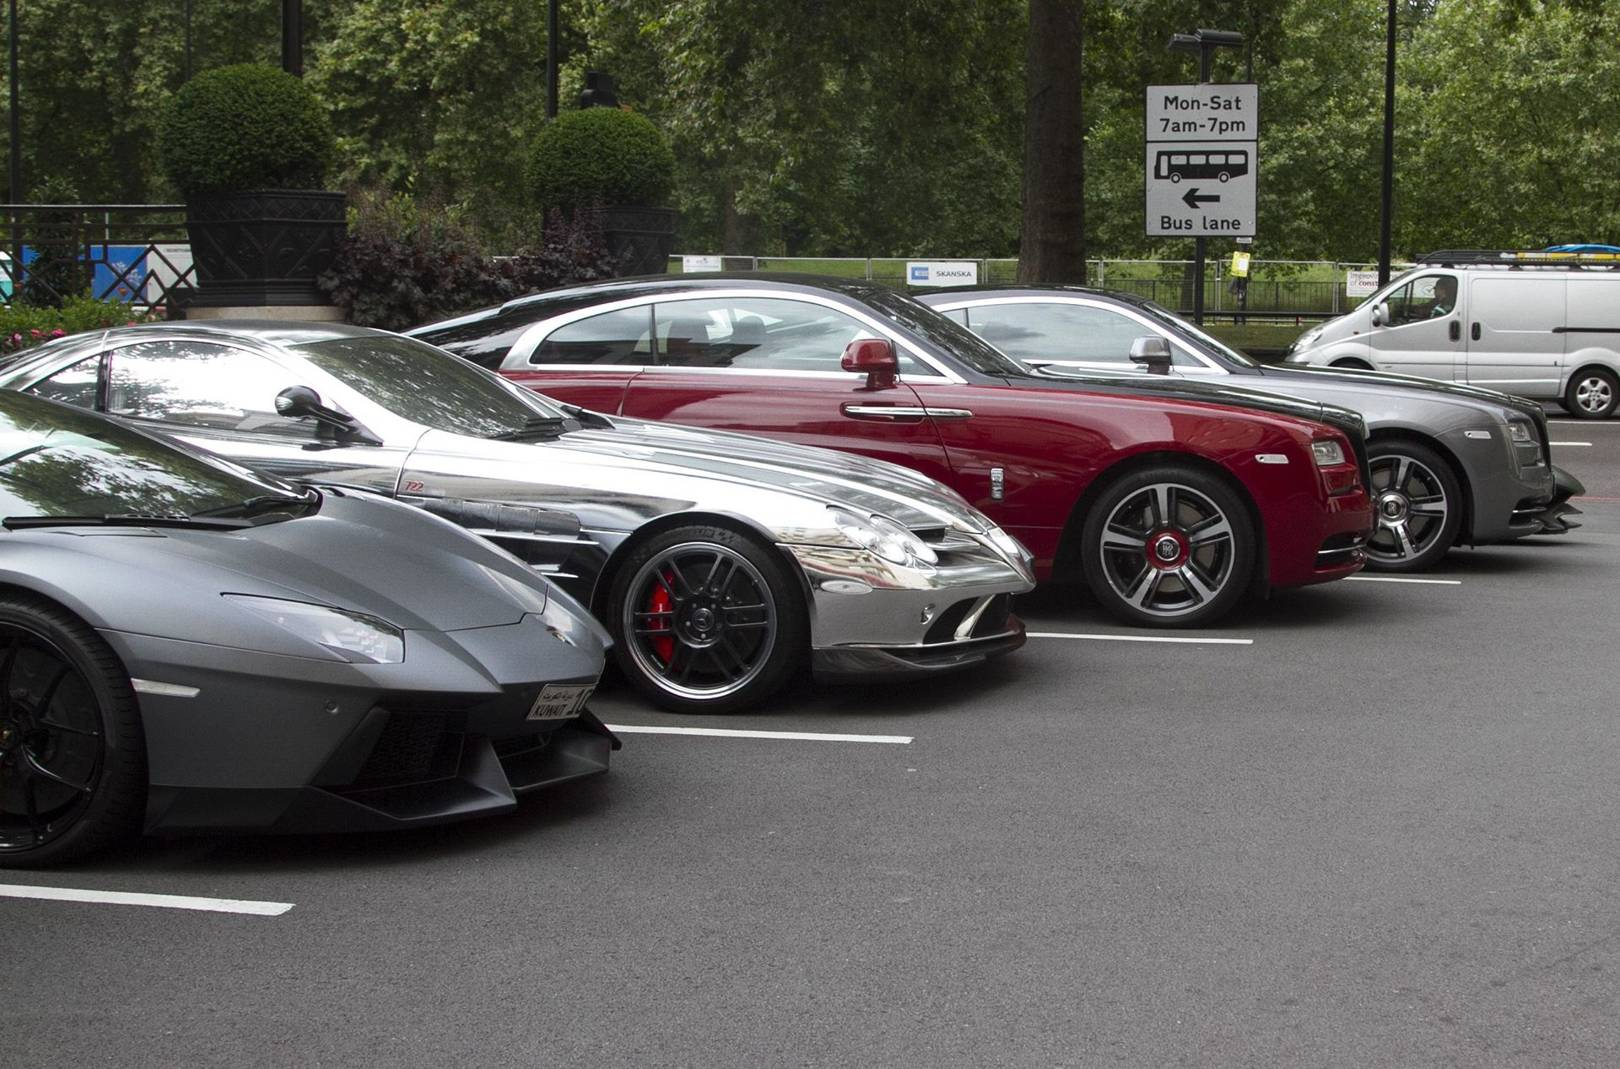 Supercars of London: where to spot them | British GQ